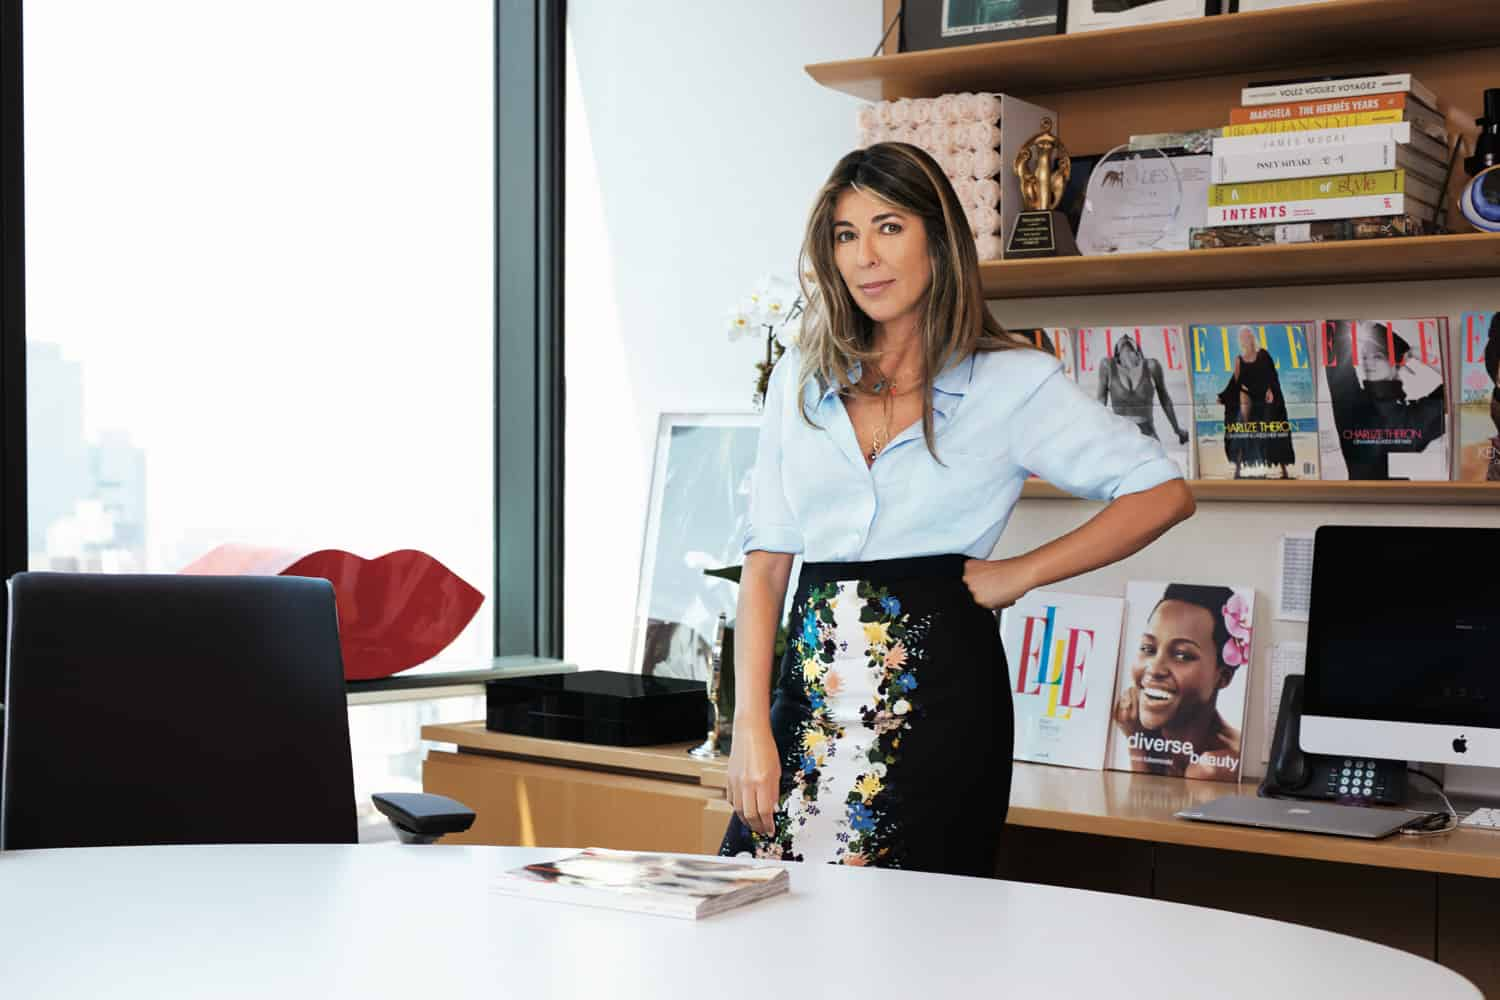 b63681a1e It s been a year since industry vet Nina Garcia took over the top job at  Elle. The Daily stopped by her office in the Hearst Tower to learn more  about her ...